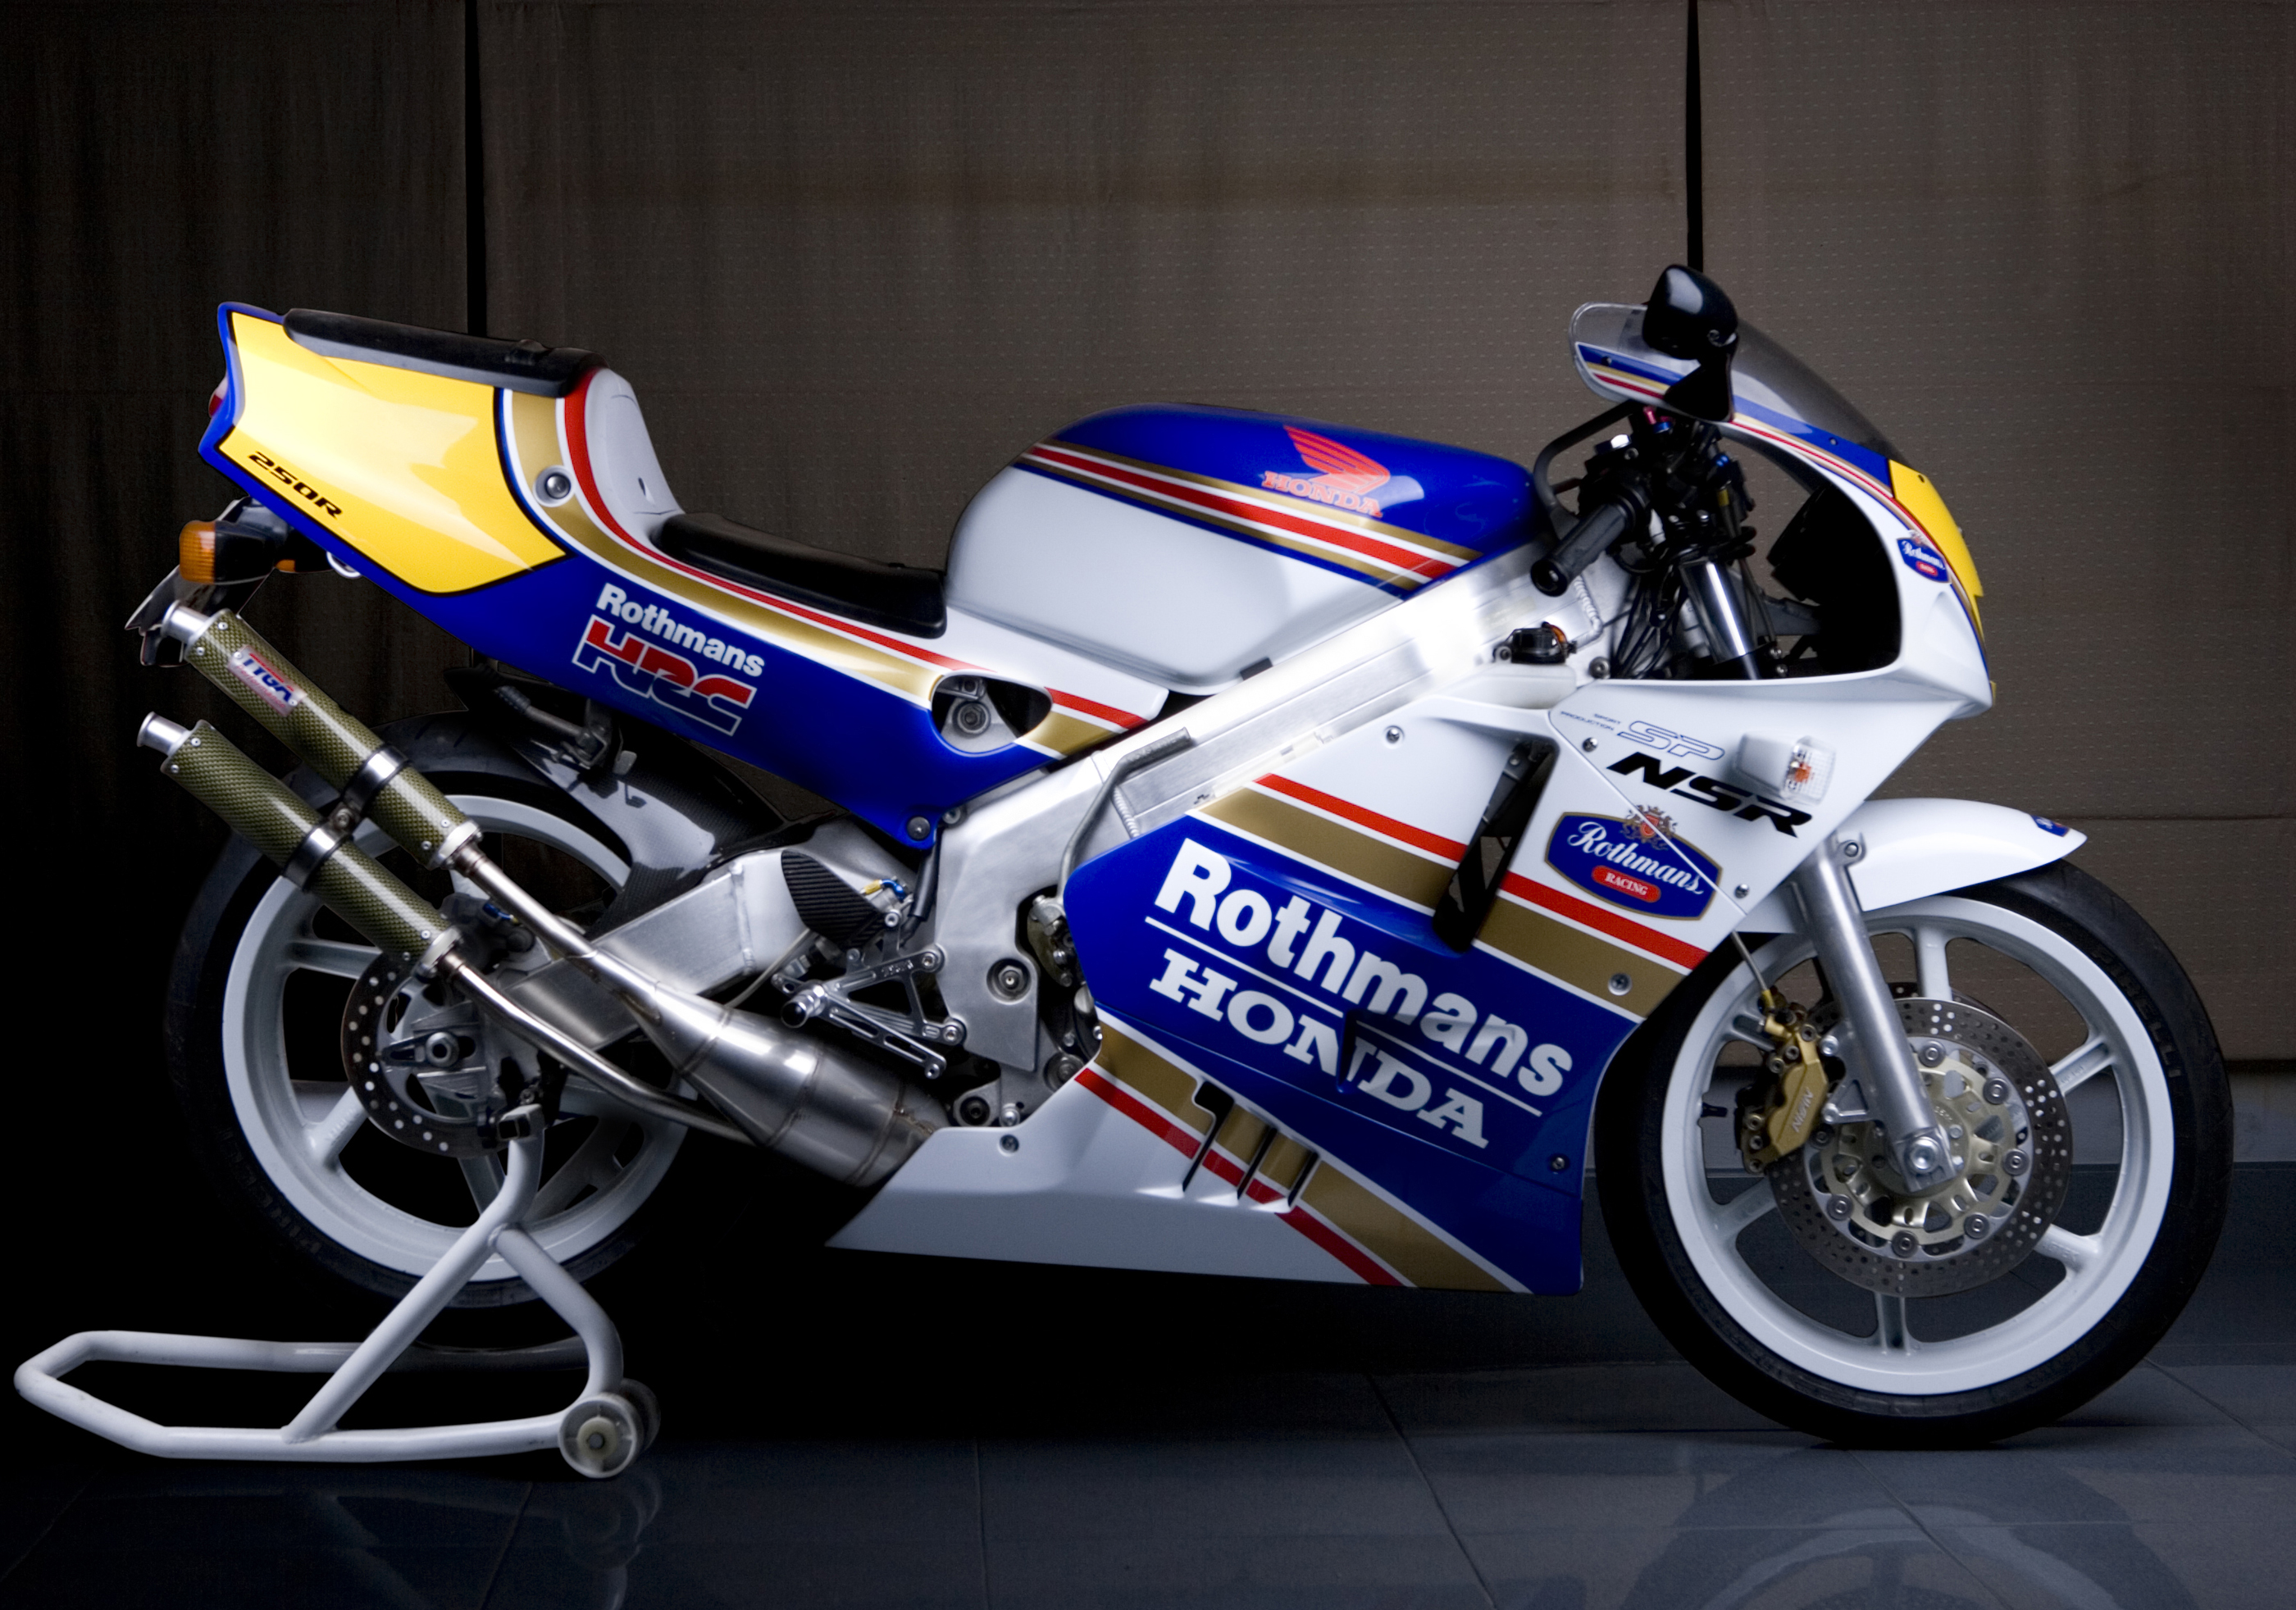 mc21 sp rothmans special tyga performance mc21 sp rothmans special